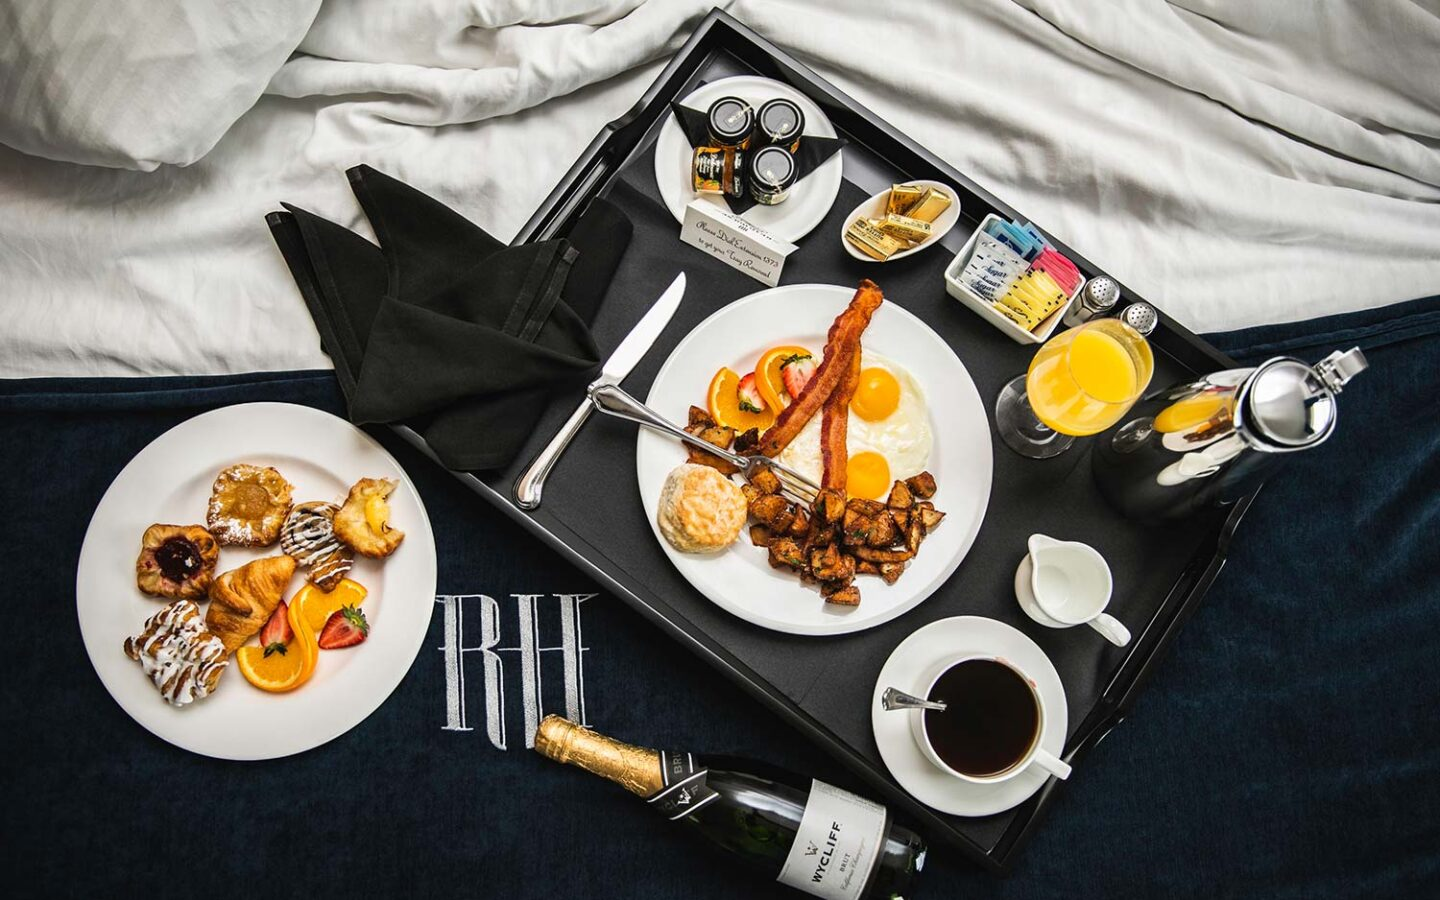 overhead view of a tray of breakfast foods, coffee, and orange juice on a bed